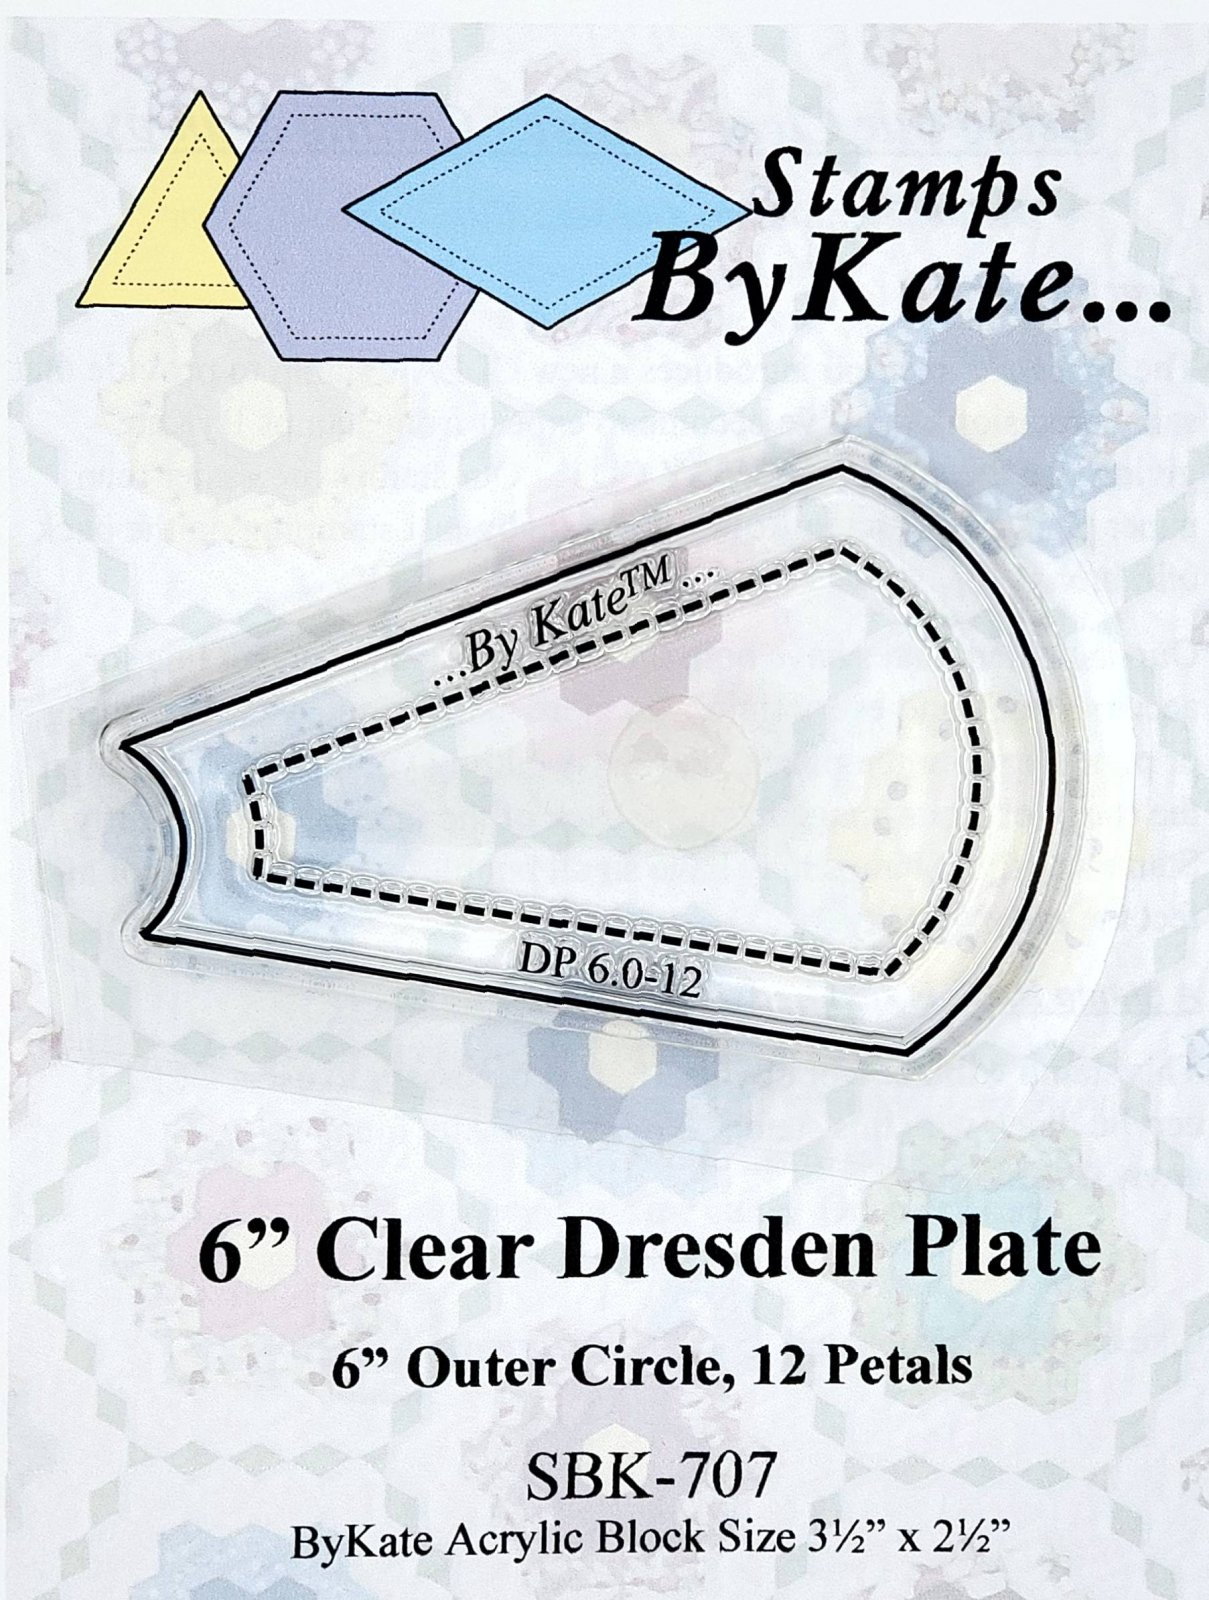 Clear Dresden Plate Stamps